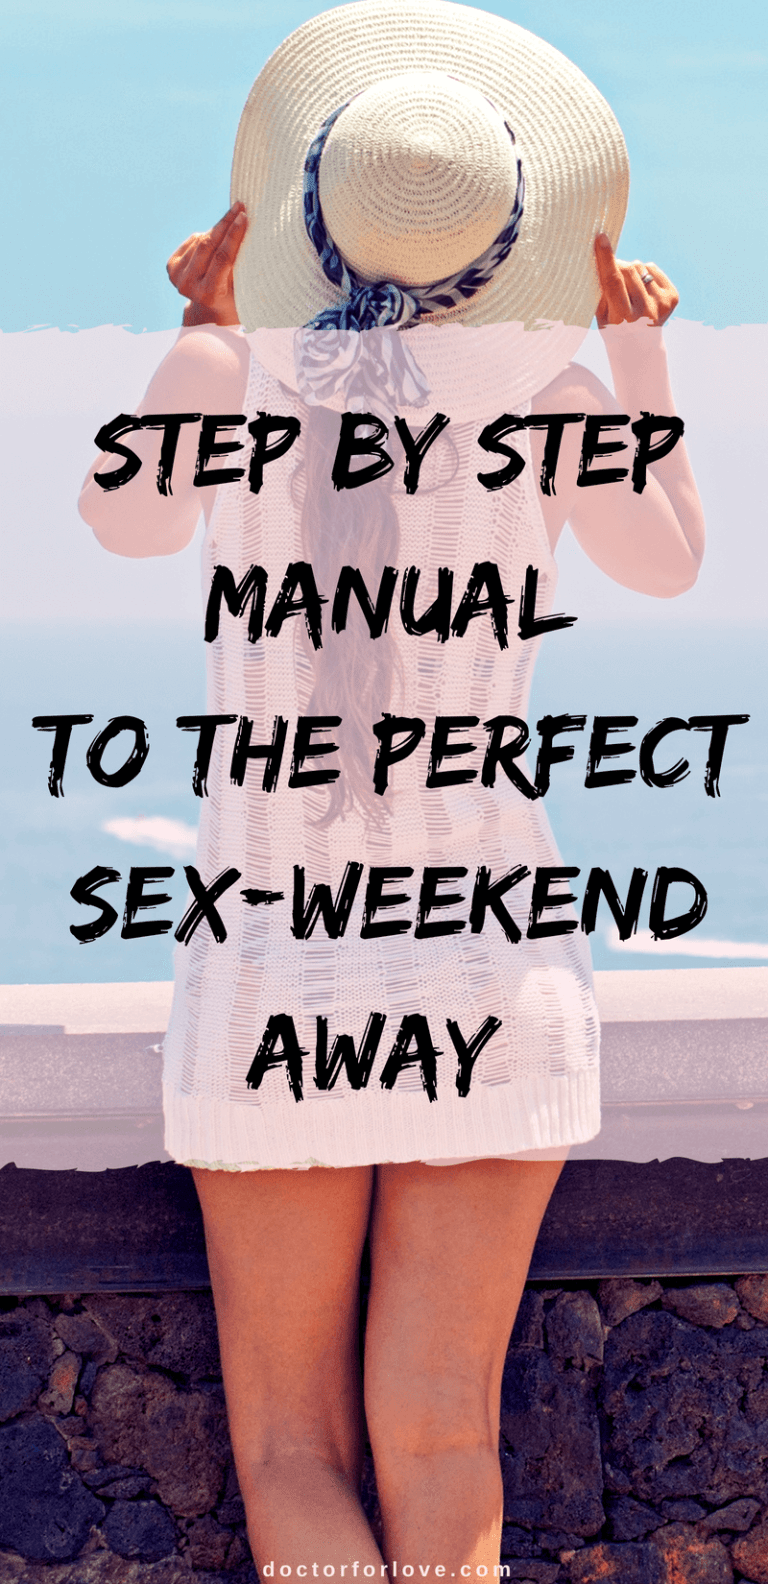 Romantic Weekend Ideas - The Perfect Dirty Weekend Away